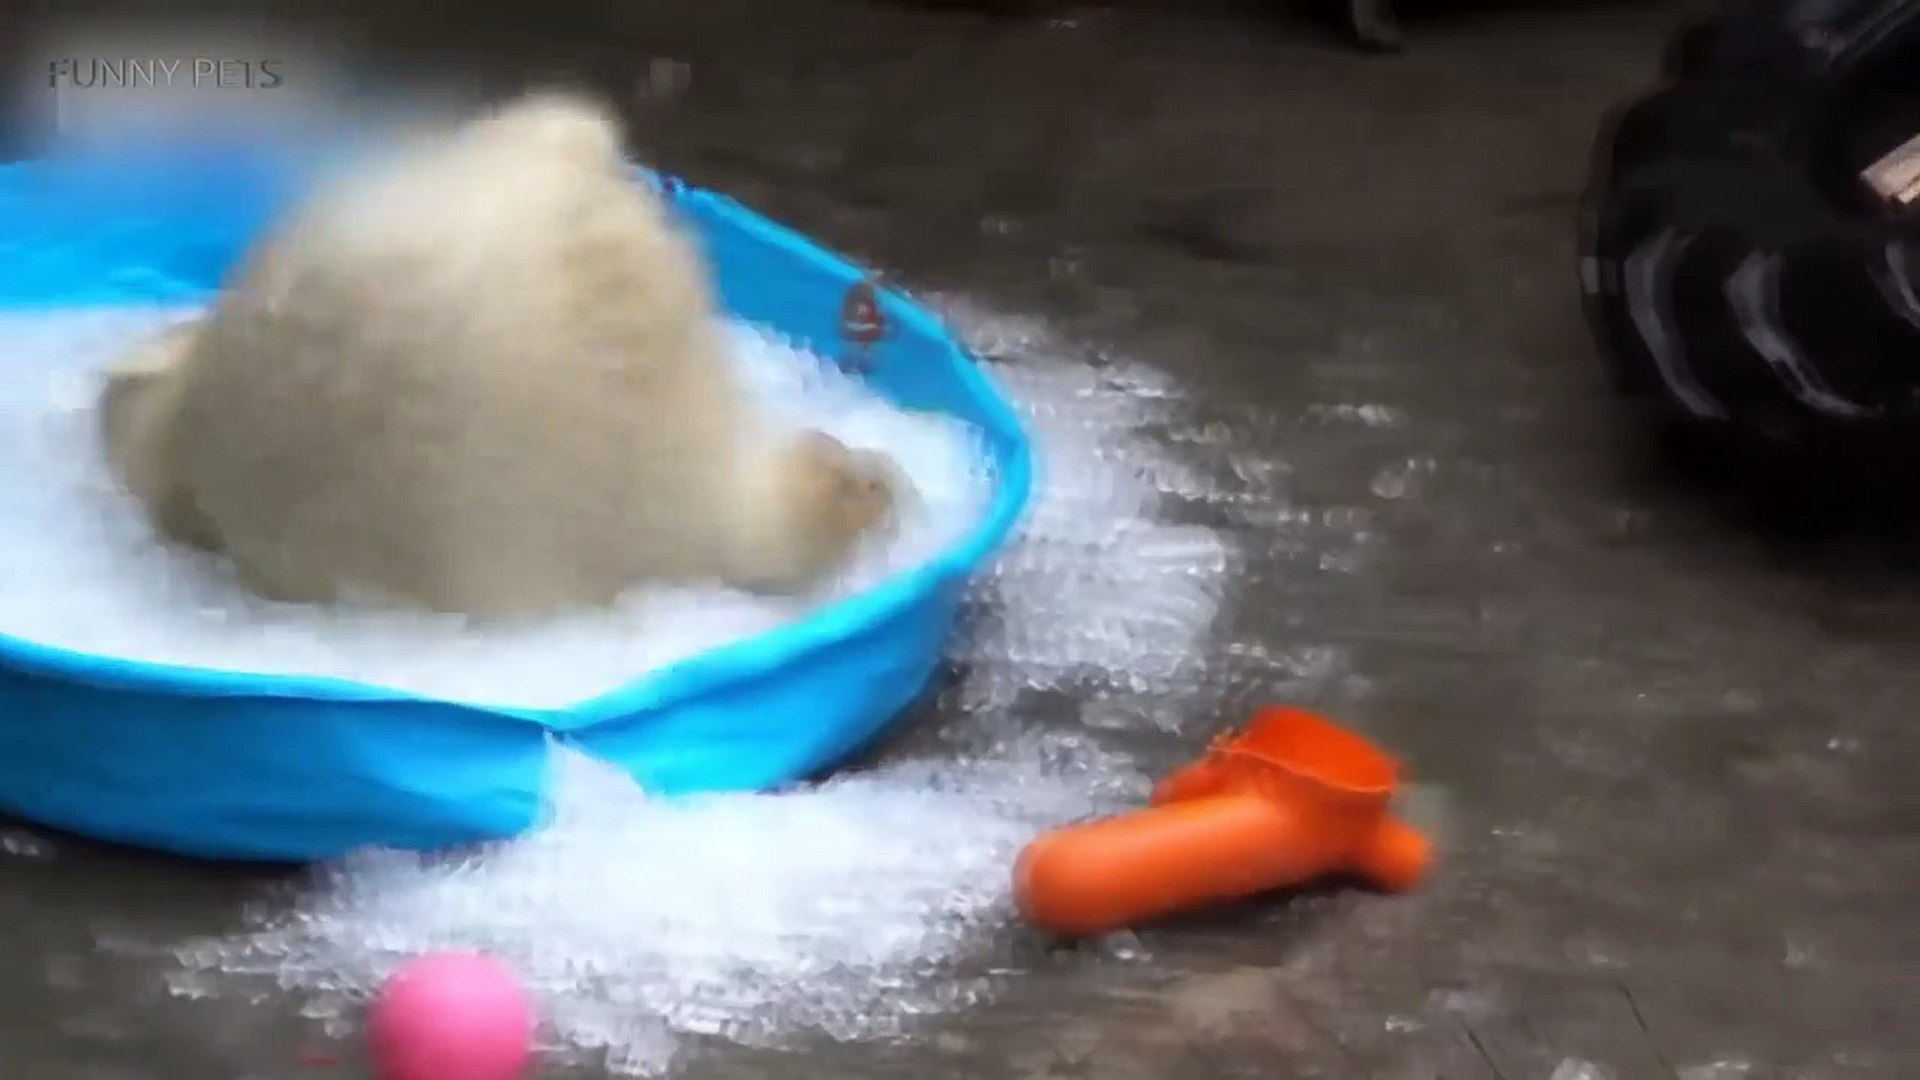 Cute Bear Cubs  Funny Baby Bears Playing [Funny Pets]